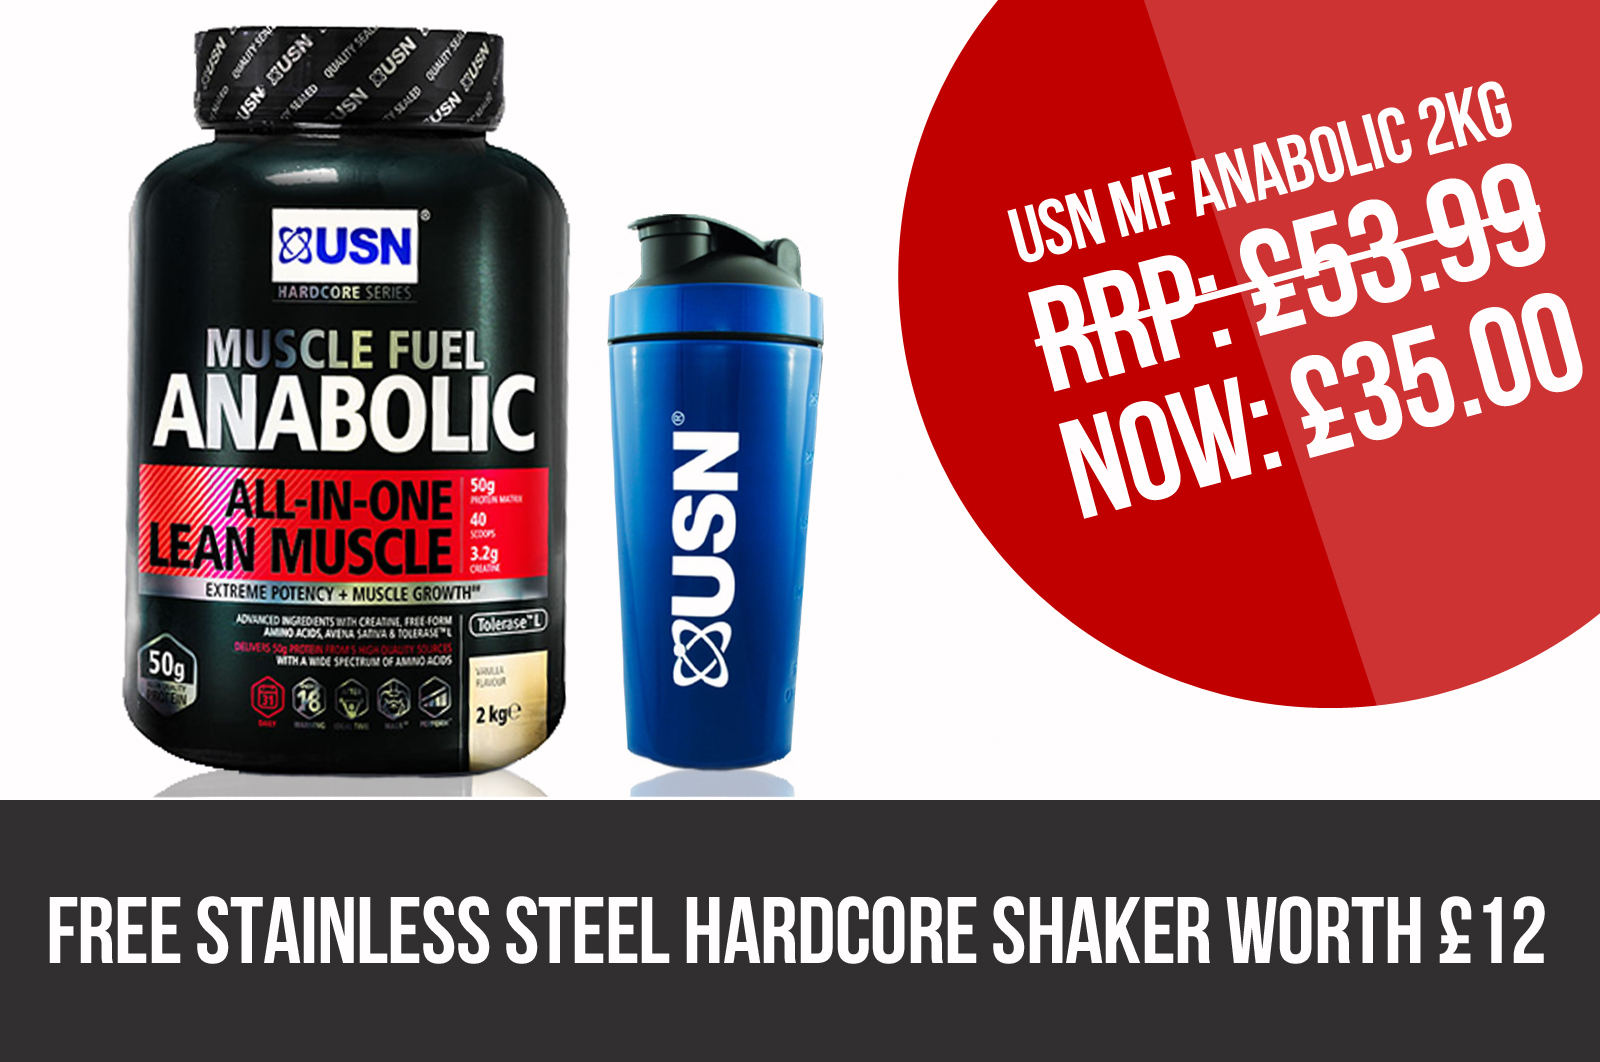 2015-12-15-Newsletter-Supp-Offers-re-USN